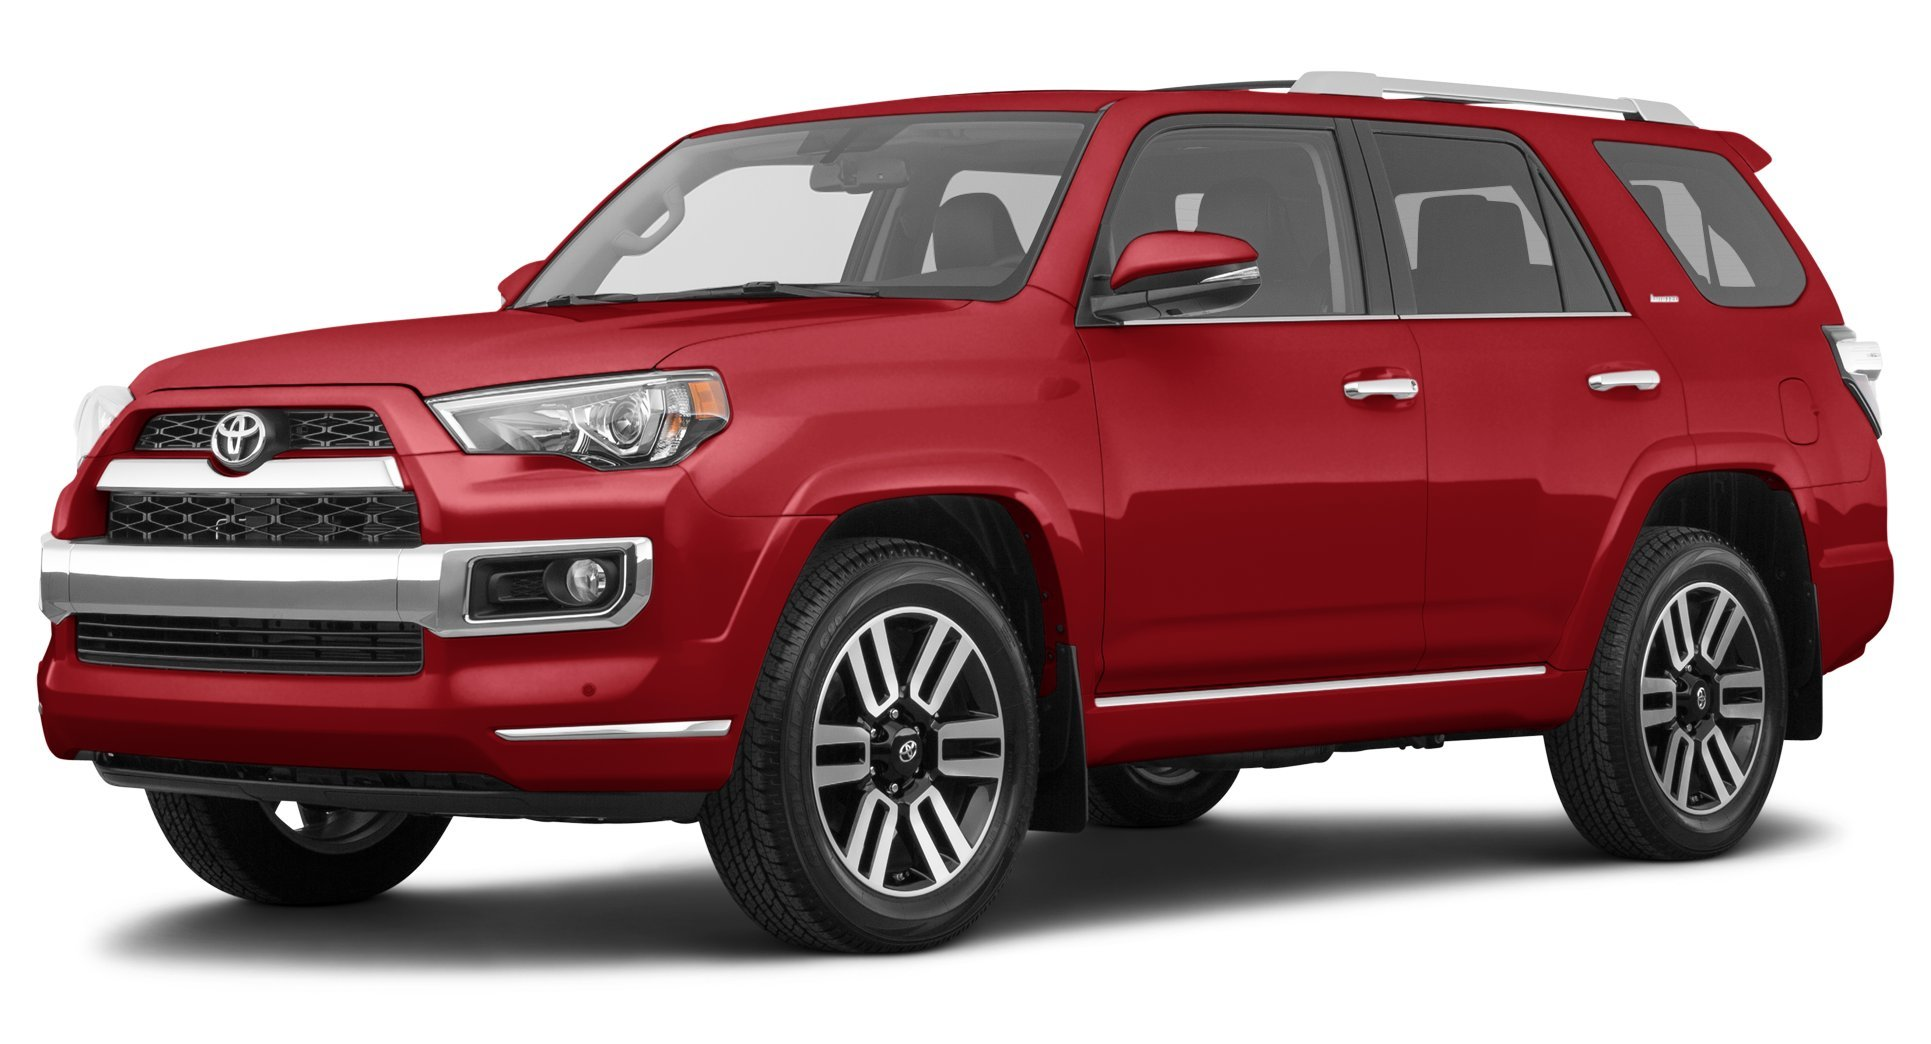 2017 toyota 4runner reviews images and specs vehicles. Black Bedroom Furniture Sets. Home Design Ideas